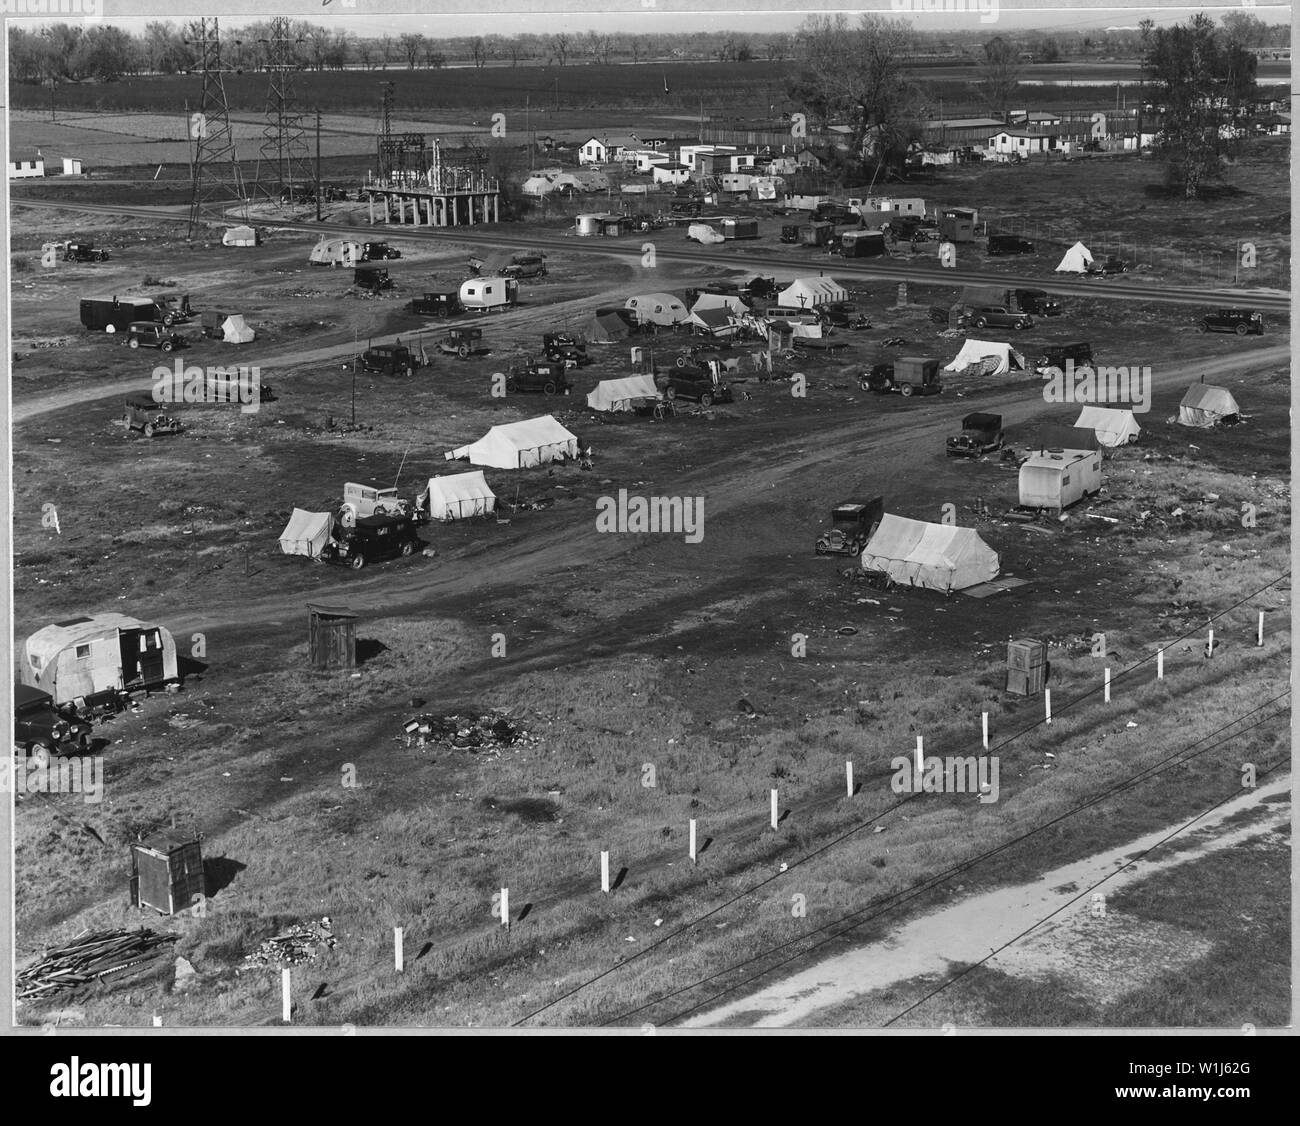 Sacramento, California. Squatter camp of agricultural labor migrants one-eighth mile outside city li . . .; Scope and content:  Full caption reads as follows: Sacramento, California. Squatter camp of agricultural labor migrants one-eighth mile outside city limits of state capital of California. Above 125 units mostly families without sanitation water donated by power company from single faucet. Across main road (upper right of picture) is a trailer camp. Beyond is a newly developing shacktown community where lots are being sold and families are settling in makeshift home-built cabins and cotta - Stock Image